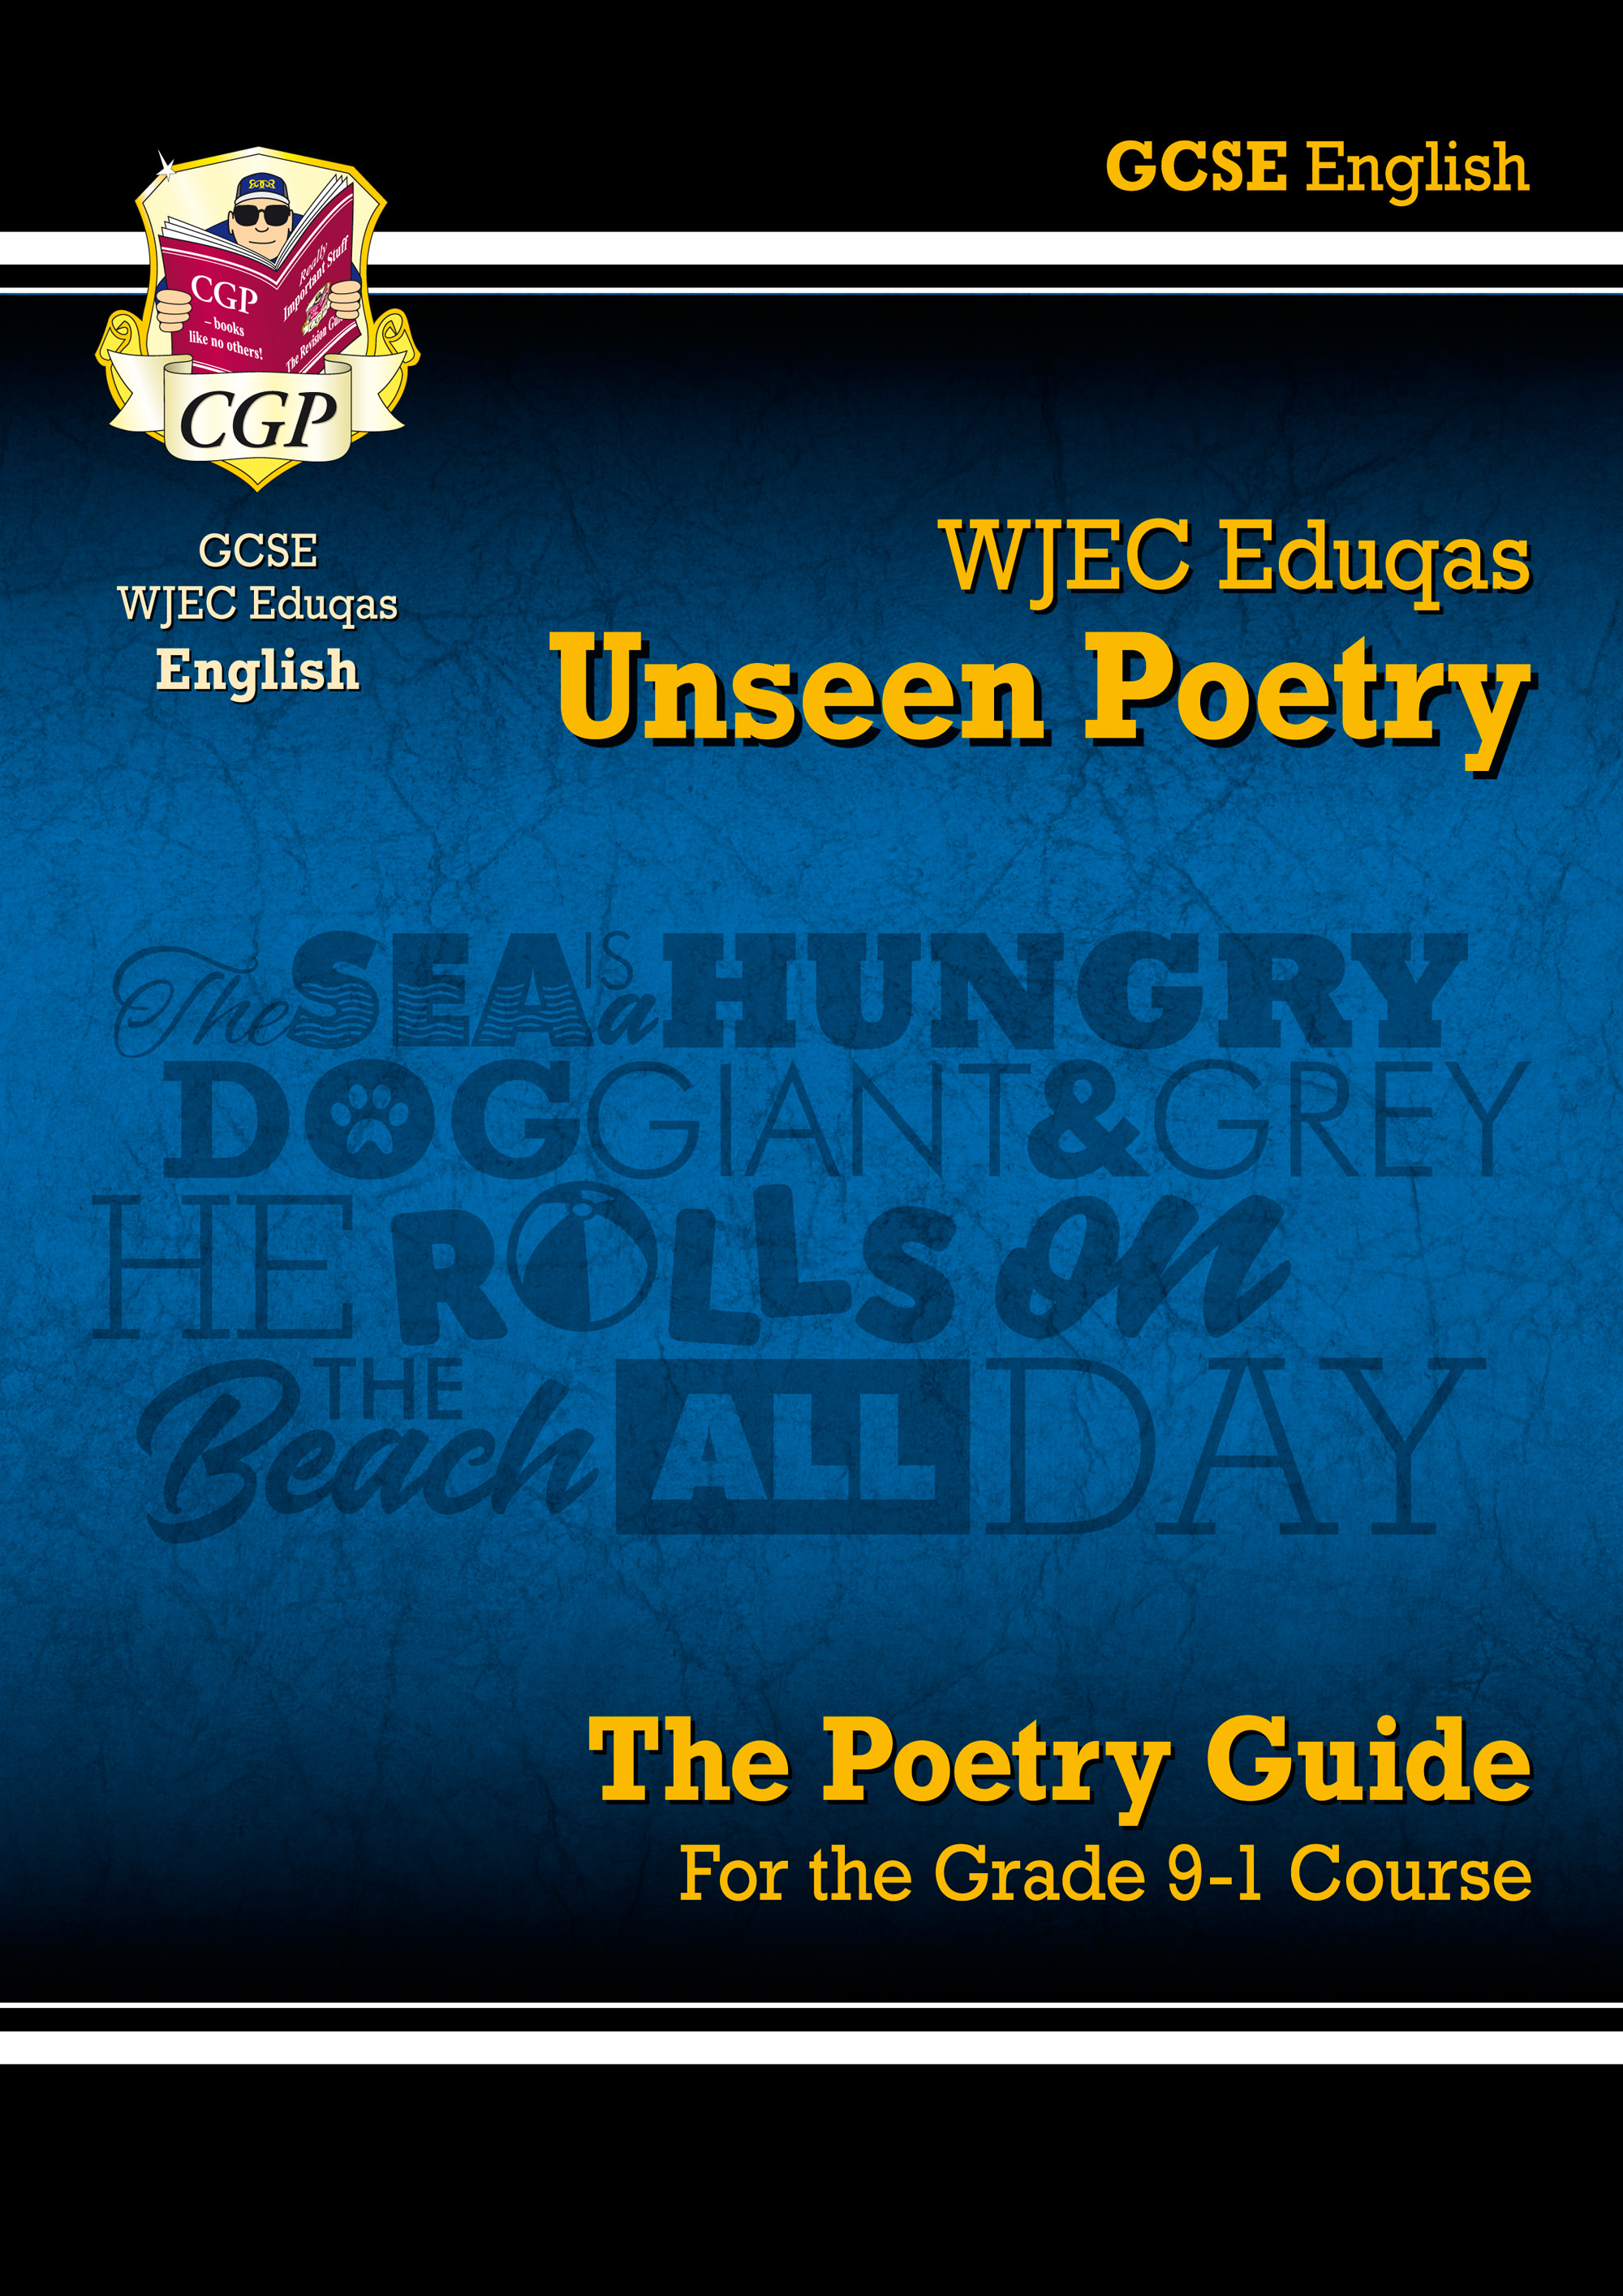 EUWR41 - New Grade 9-1 GCSE English Literature WJEC Eduqas Unseen Poetry Guide